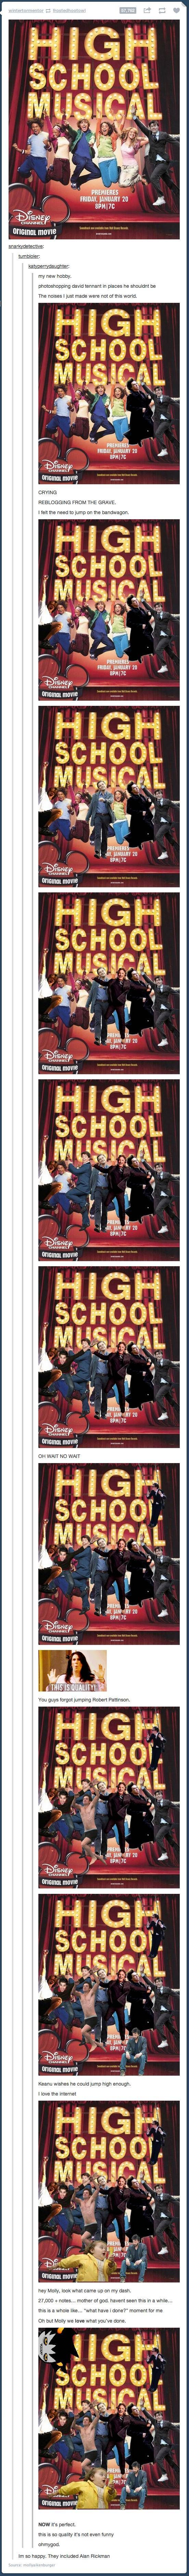 it's not HSM anymore!